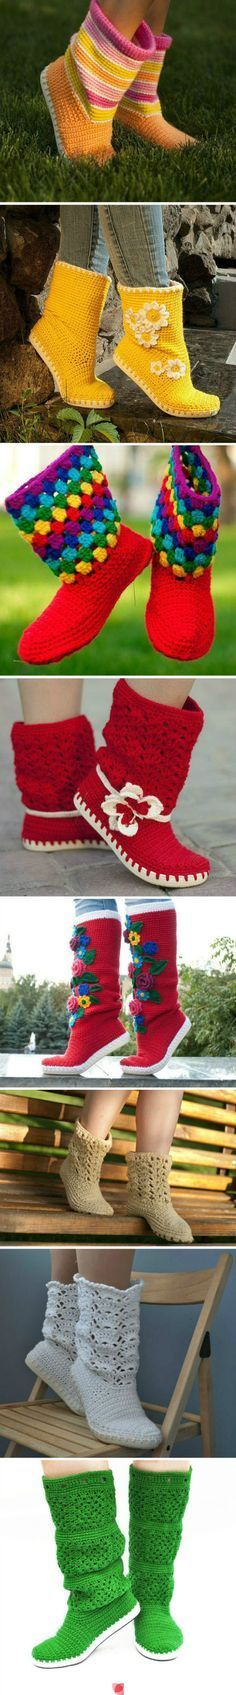 Yay, I found the source for these lovely boots!